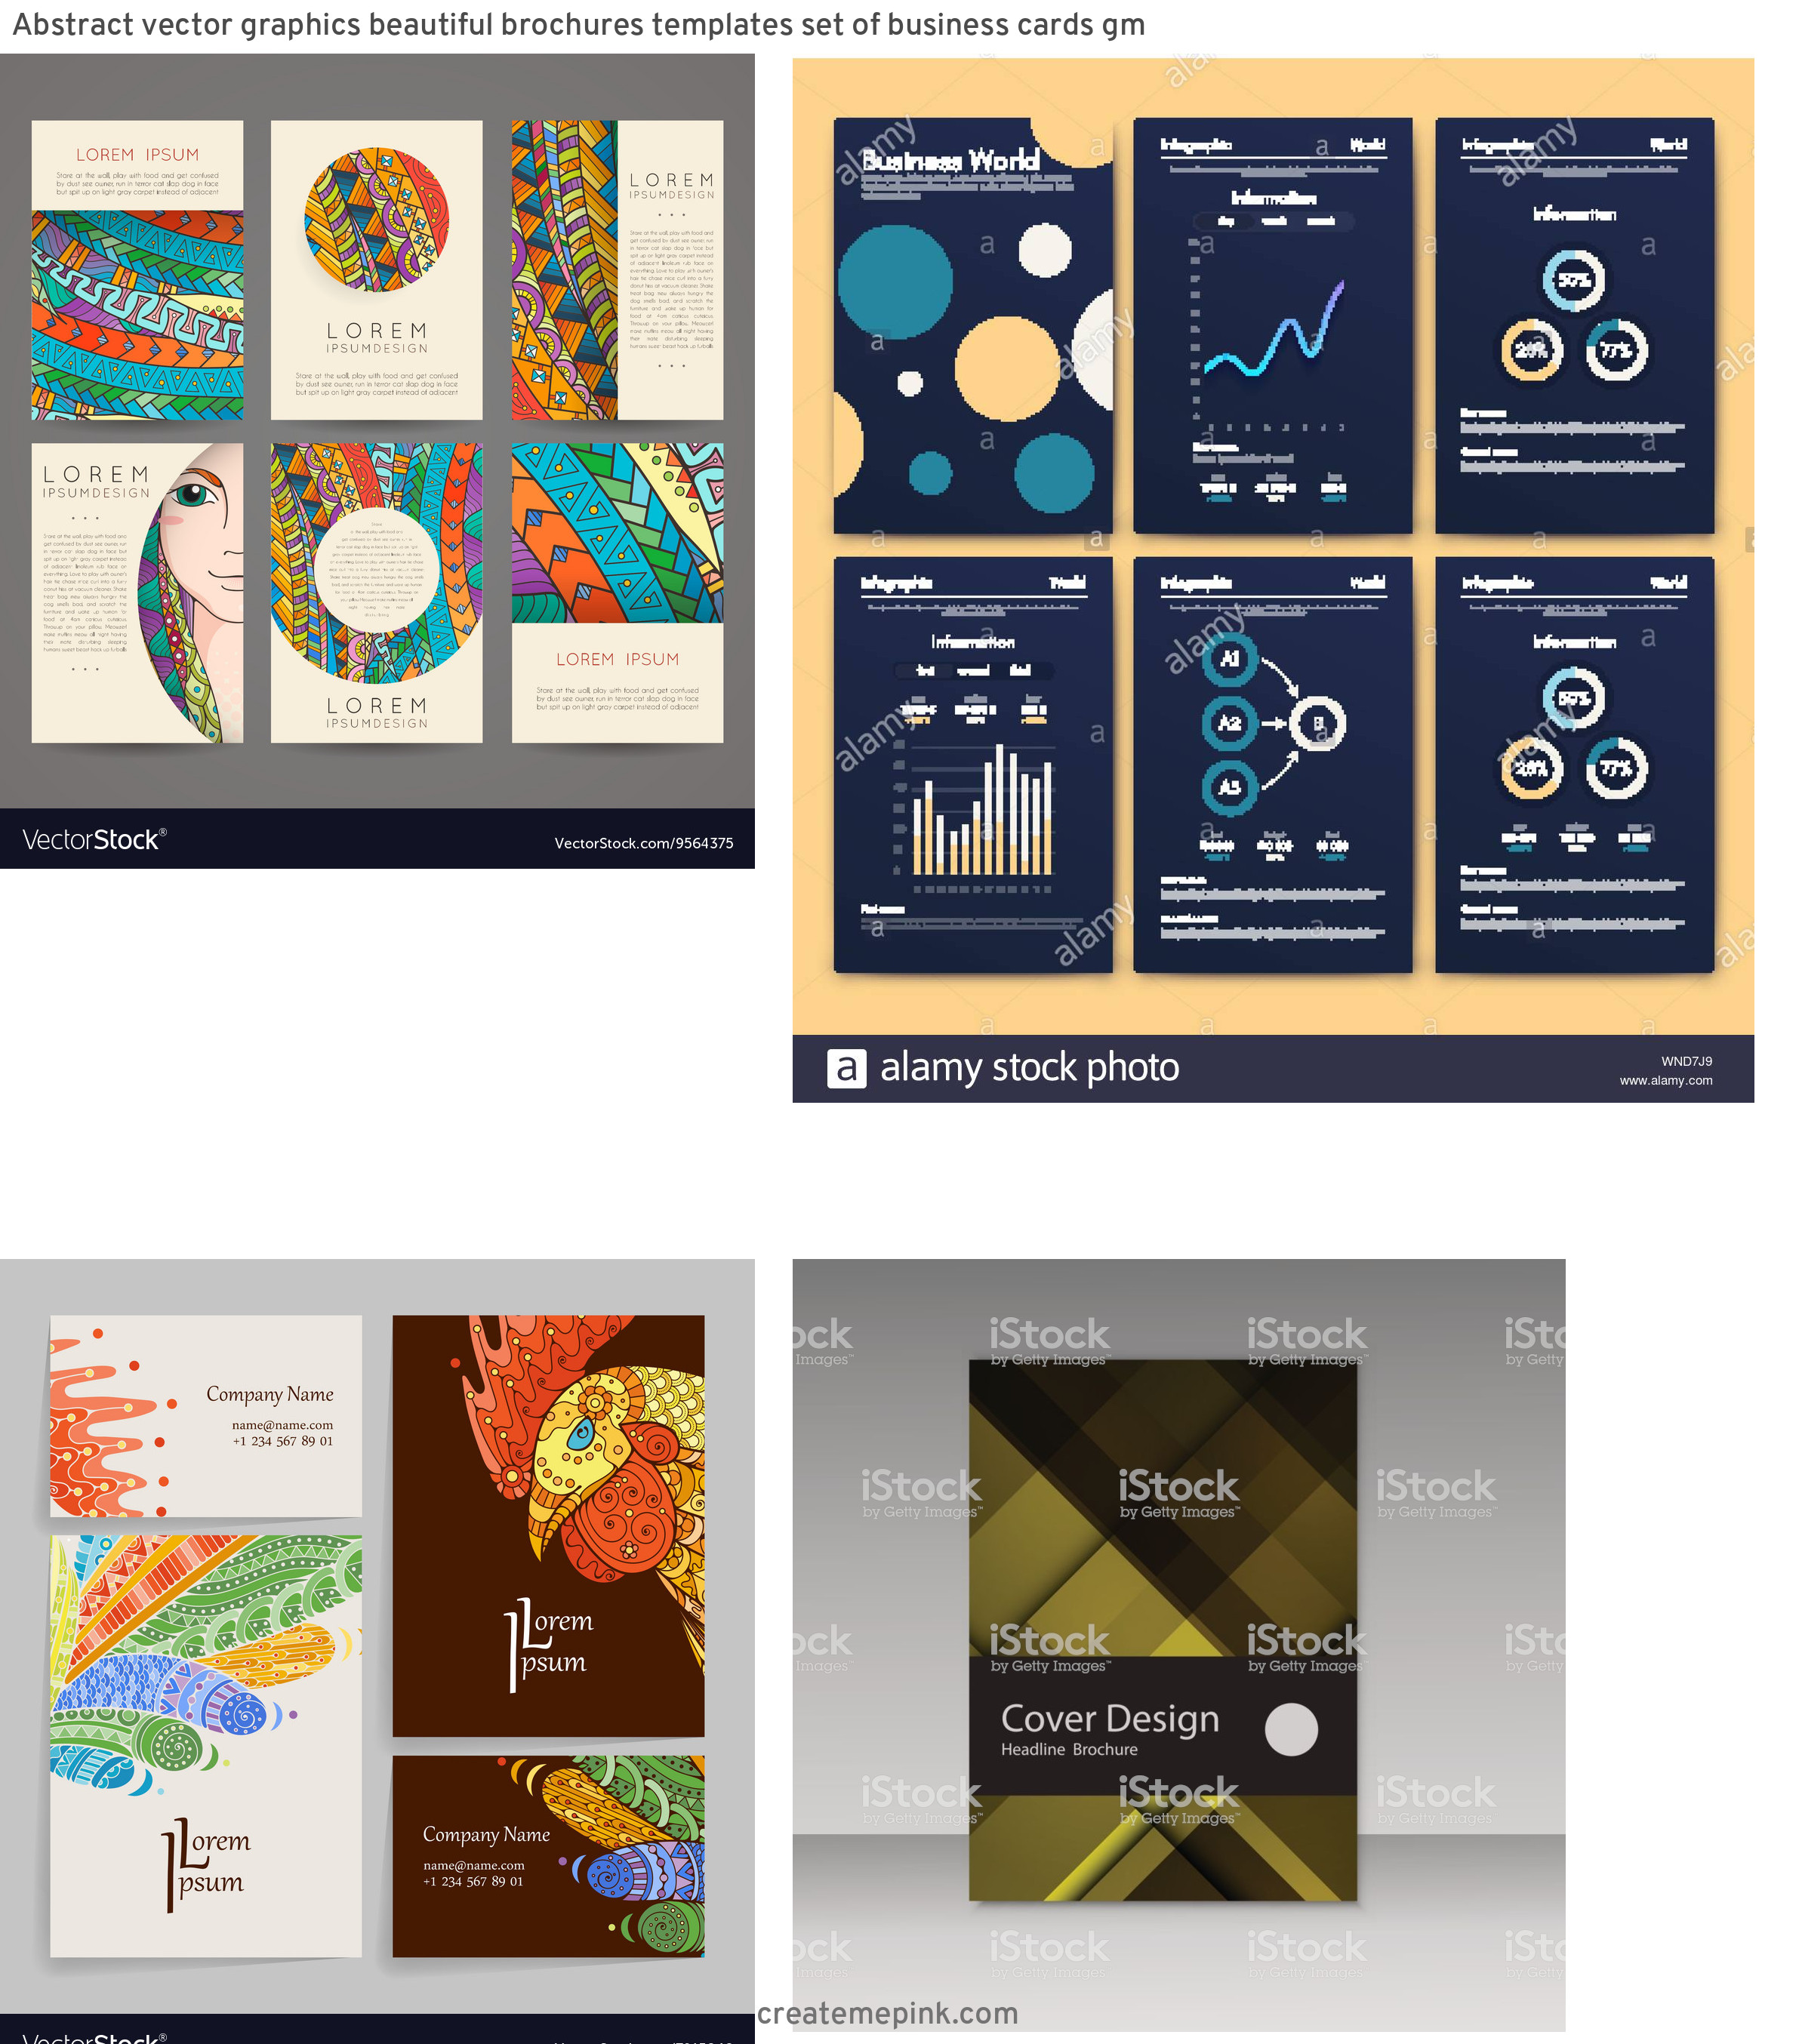 Vector Art For Brochures: Abstract Vector Graphics Beautiful Brochures Templates Set Of Business Cards Gm